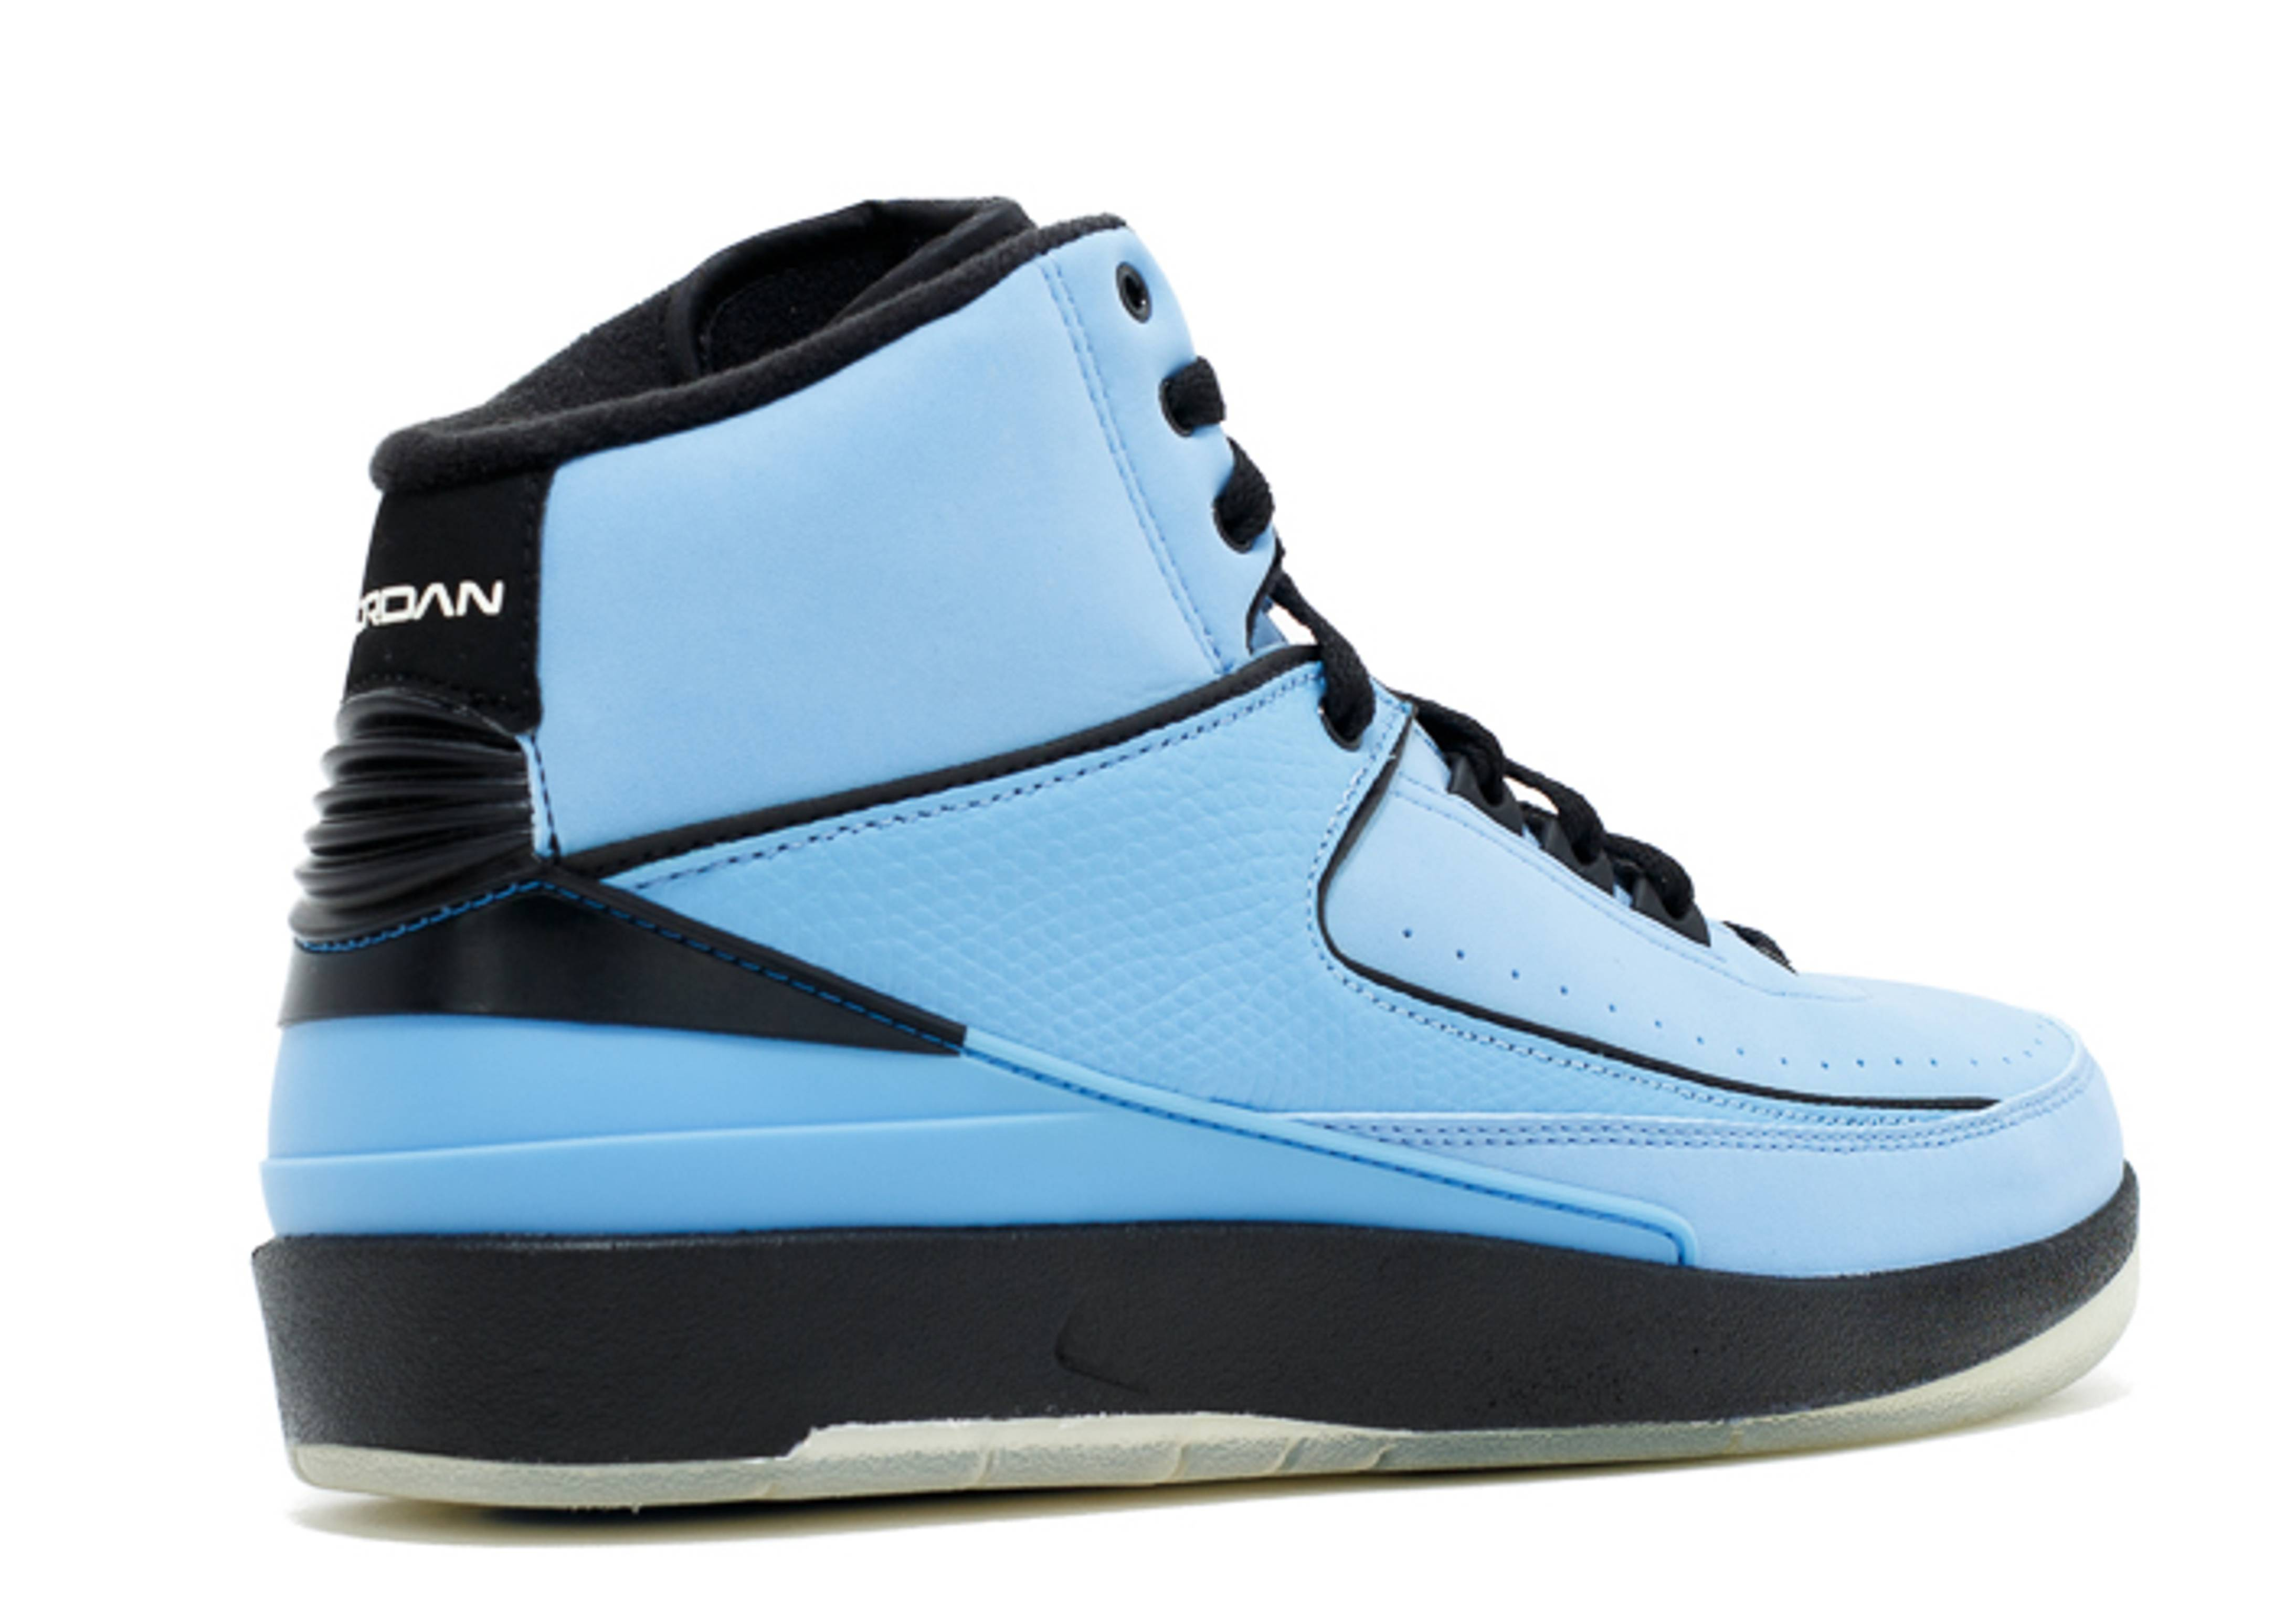 72f6cec2d22 Air Jordan 2 Retro Qf - Air Jordan - 395709 401 - university blue/black-white  | Flight Club